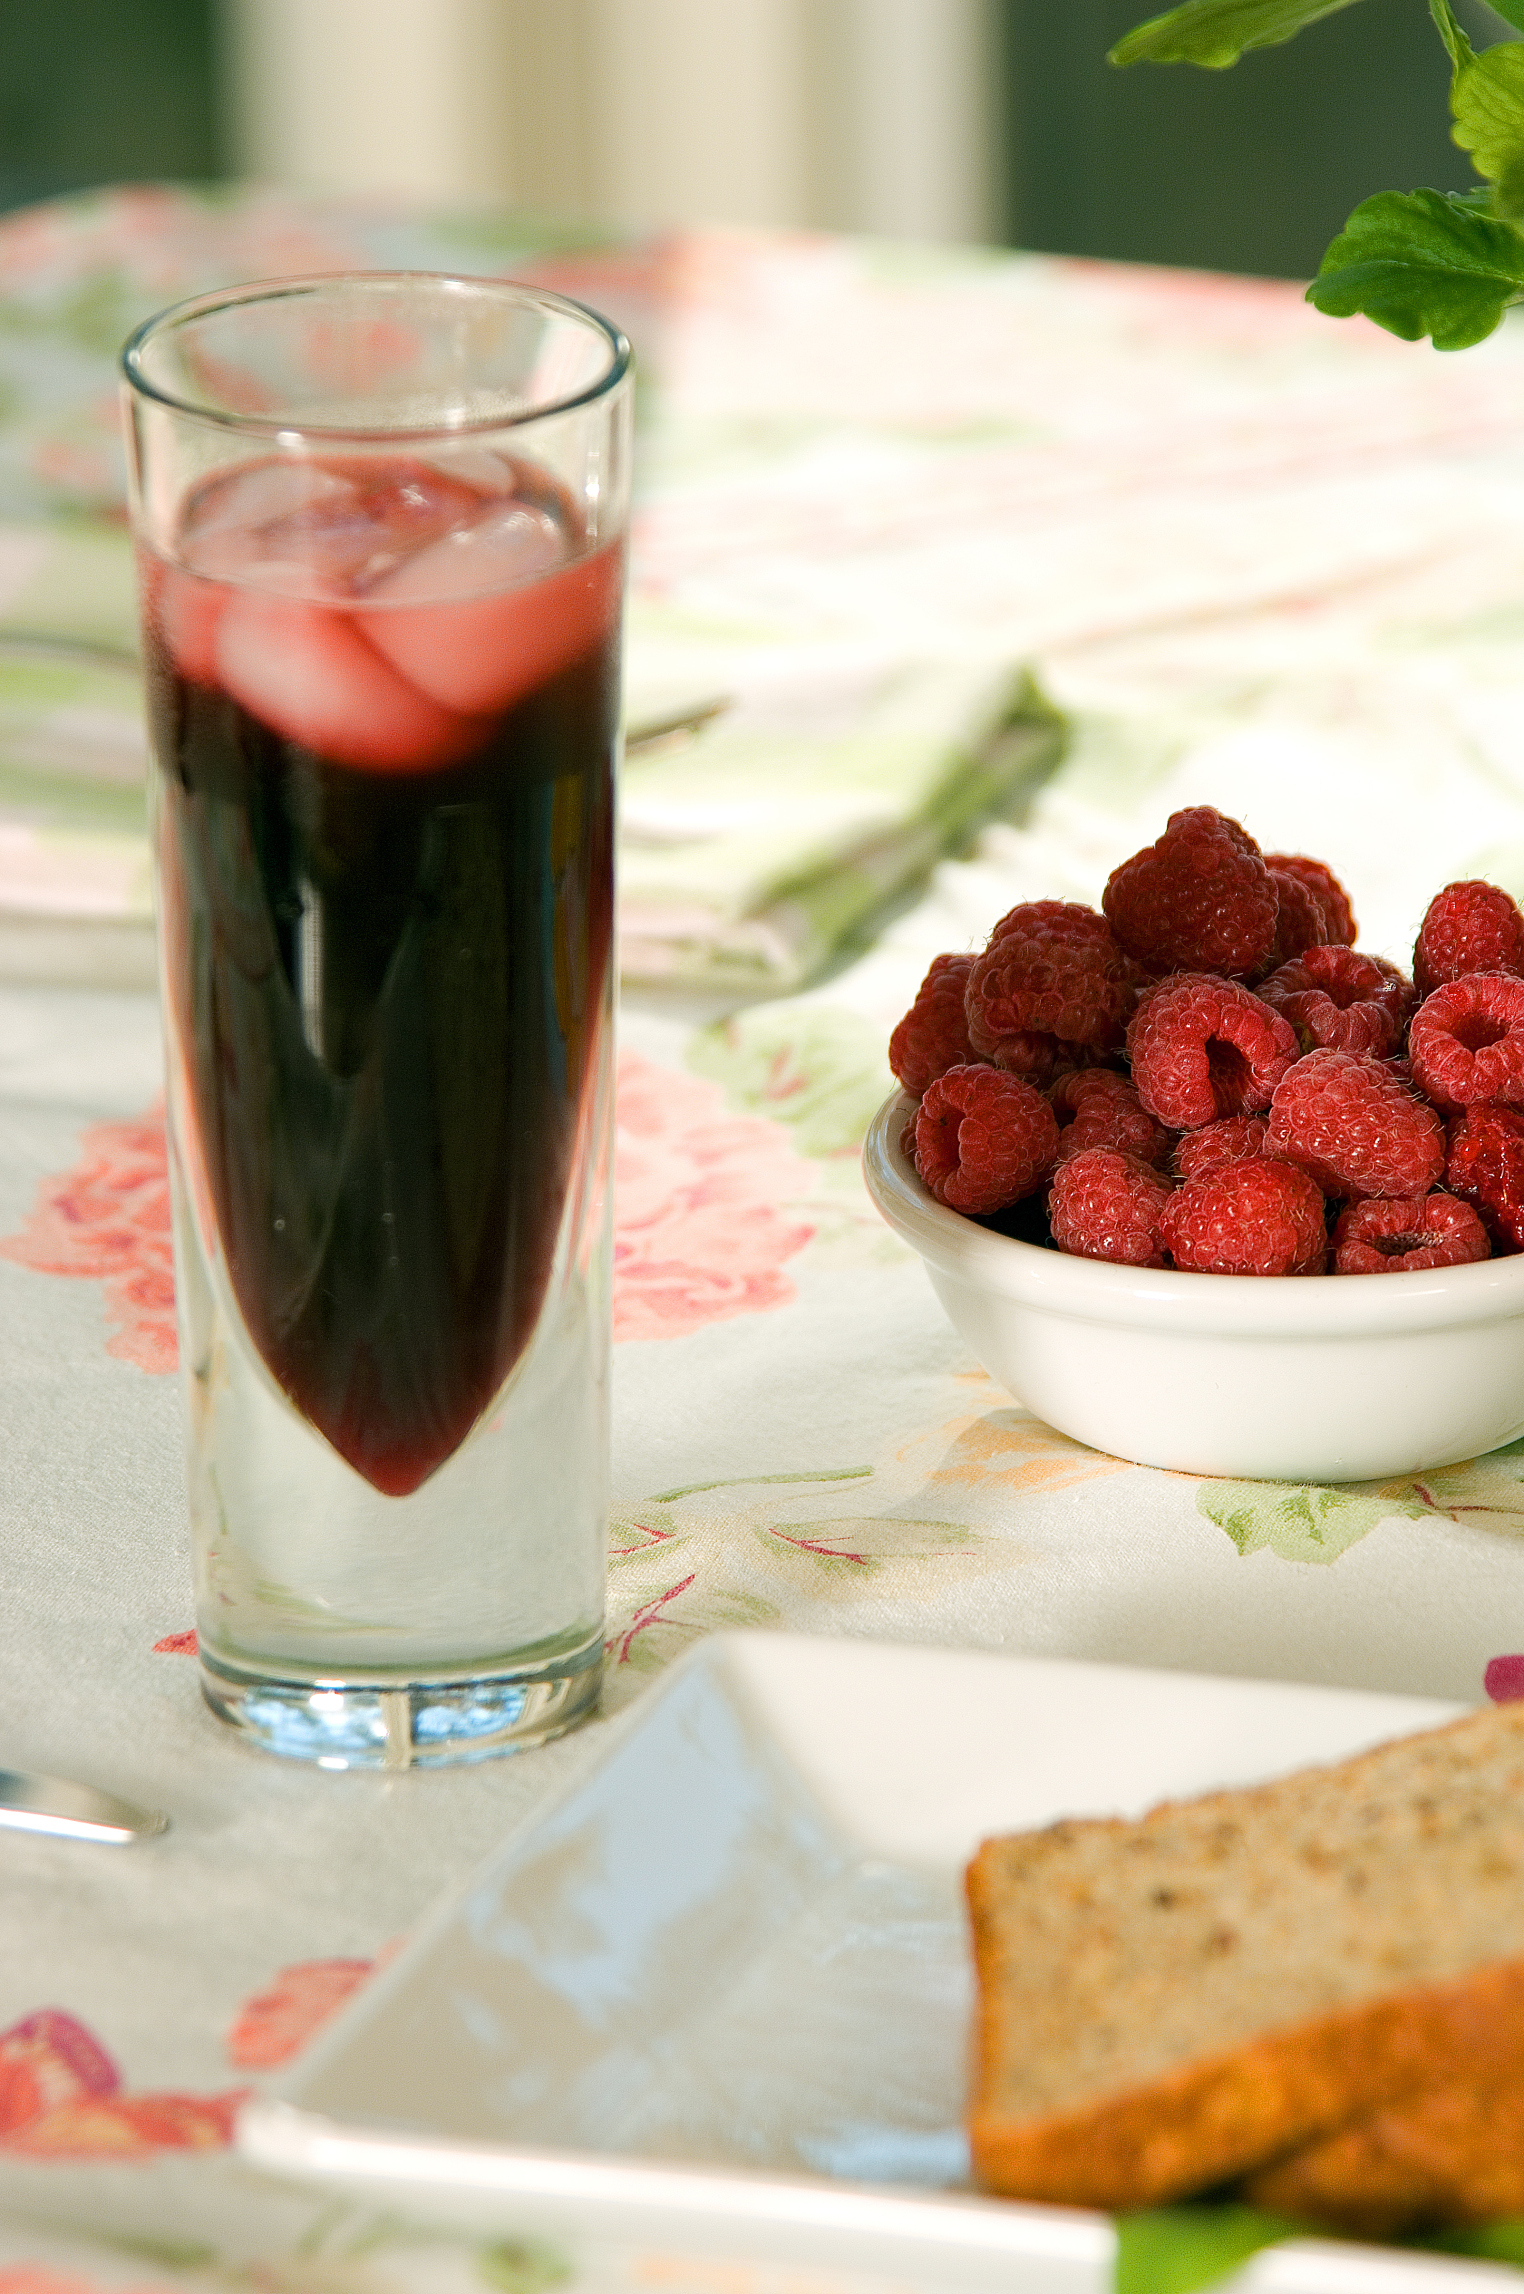 Commercial raspberry juice is strained to remove seeds.